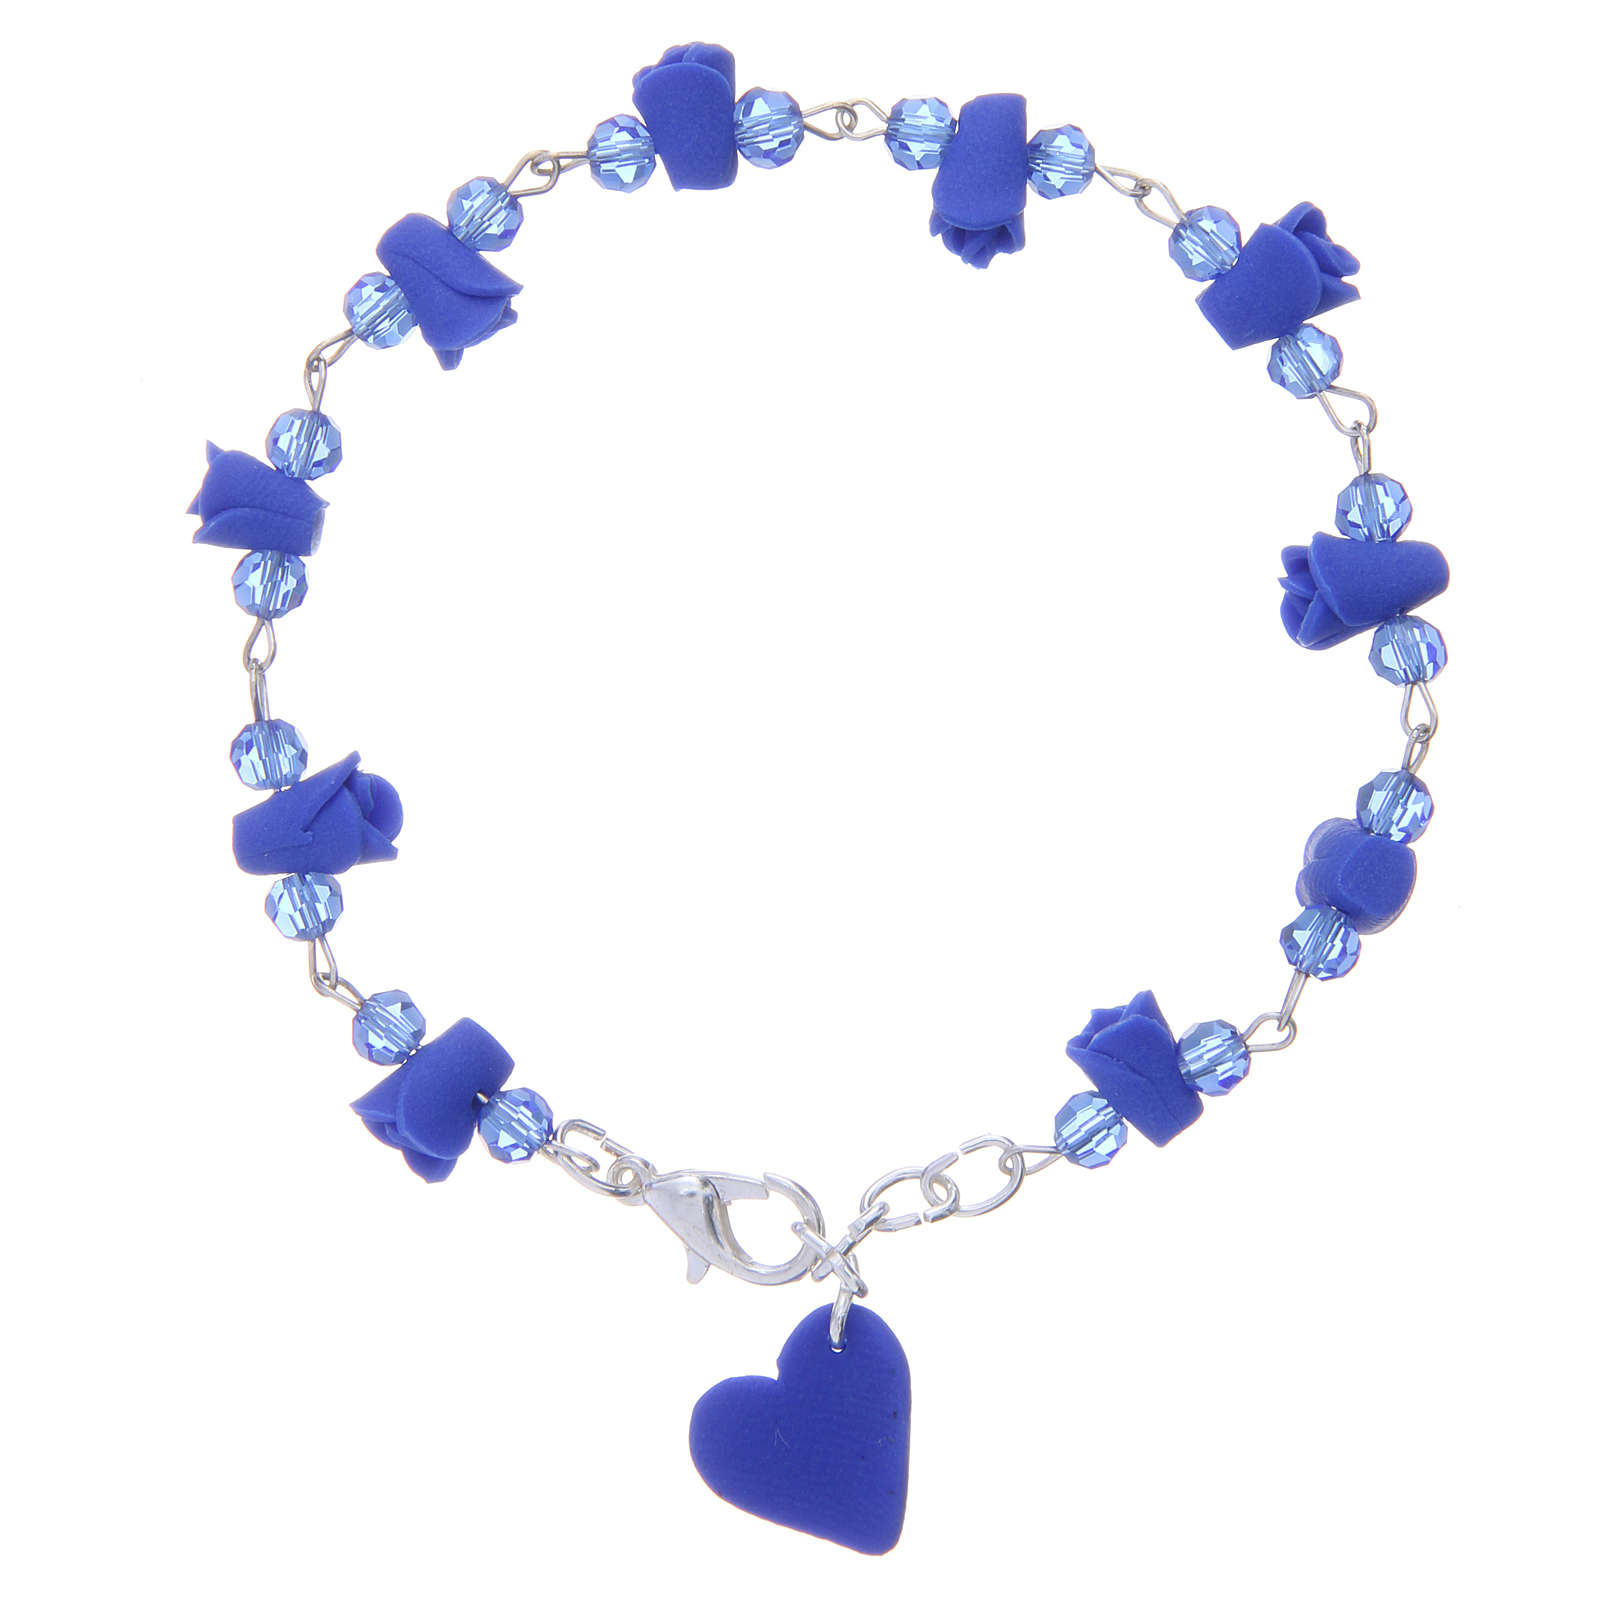 Medjugorje Rosary bracelet, blue with crystal beads and ceramic hearts 4